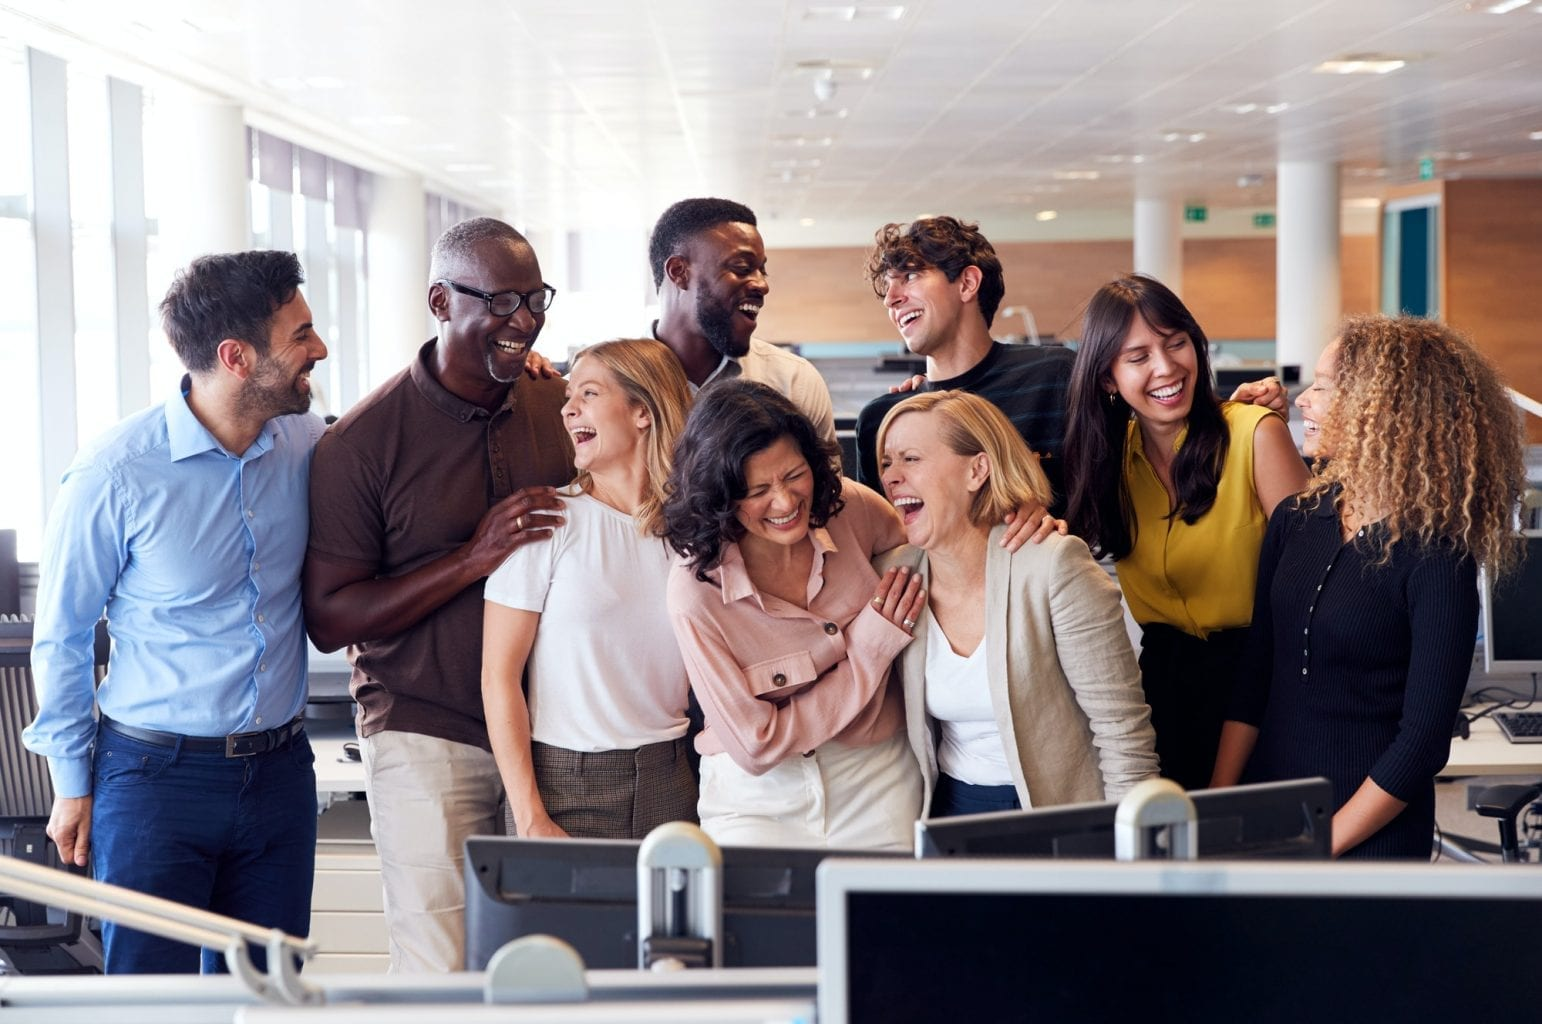 Happy Business Team Working In Modern Office Laughing Together